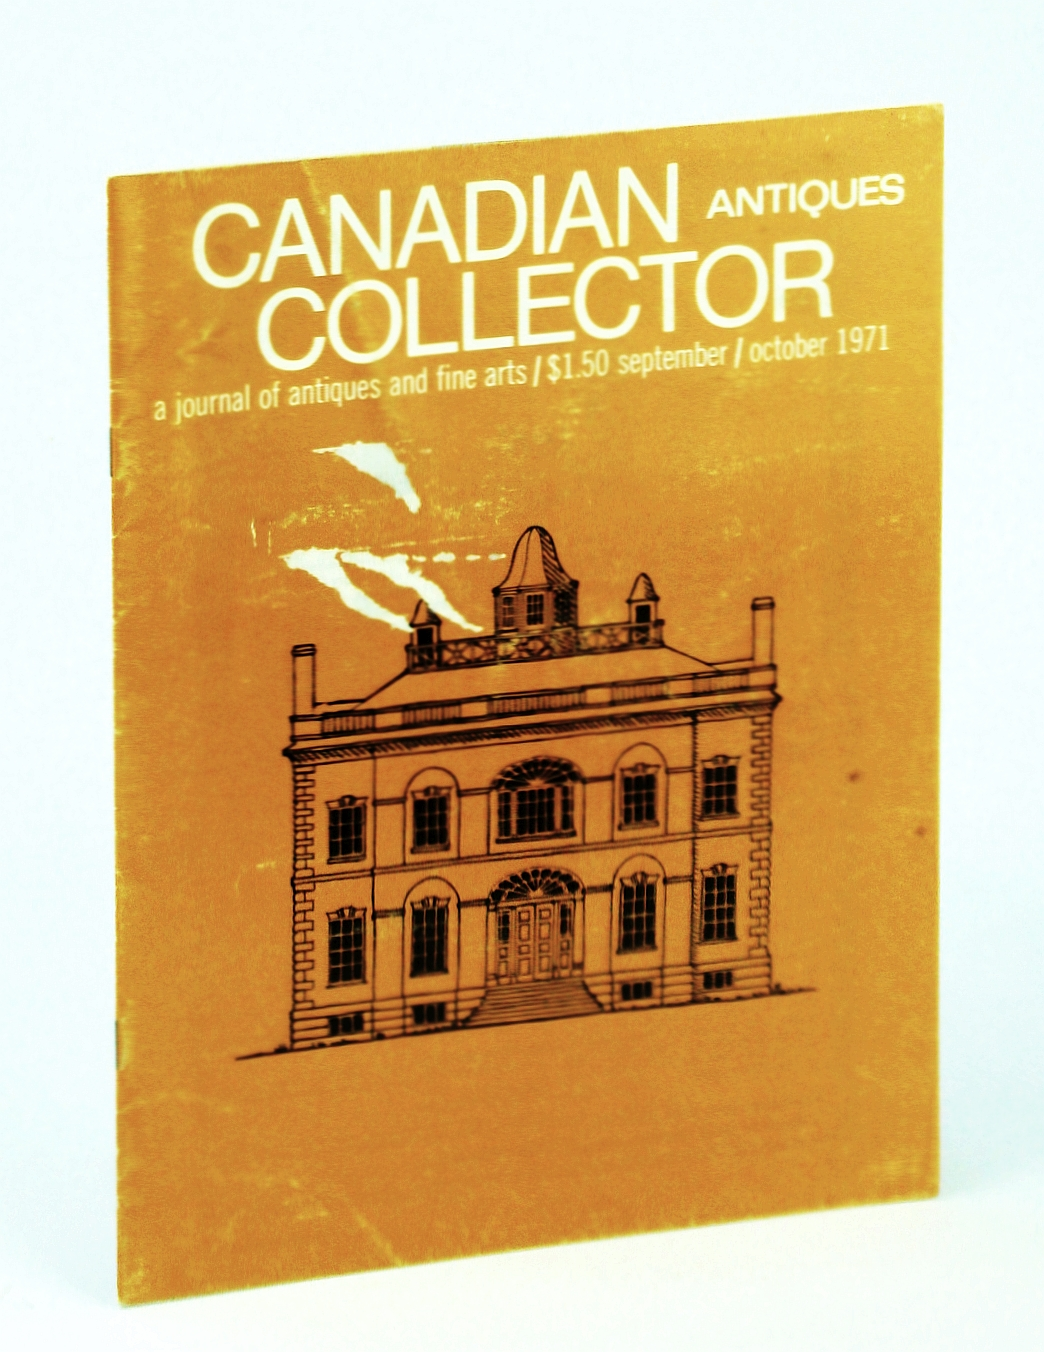 Image for Canadian Antiques Collector [Magazine], A Journal of Antiques and Fine Arts: September / October [Sept. /Oct.] 1971, Vol. 6, No. 7: Daniel Orth - The Potter of Campden